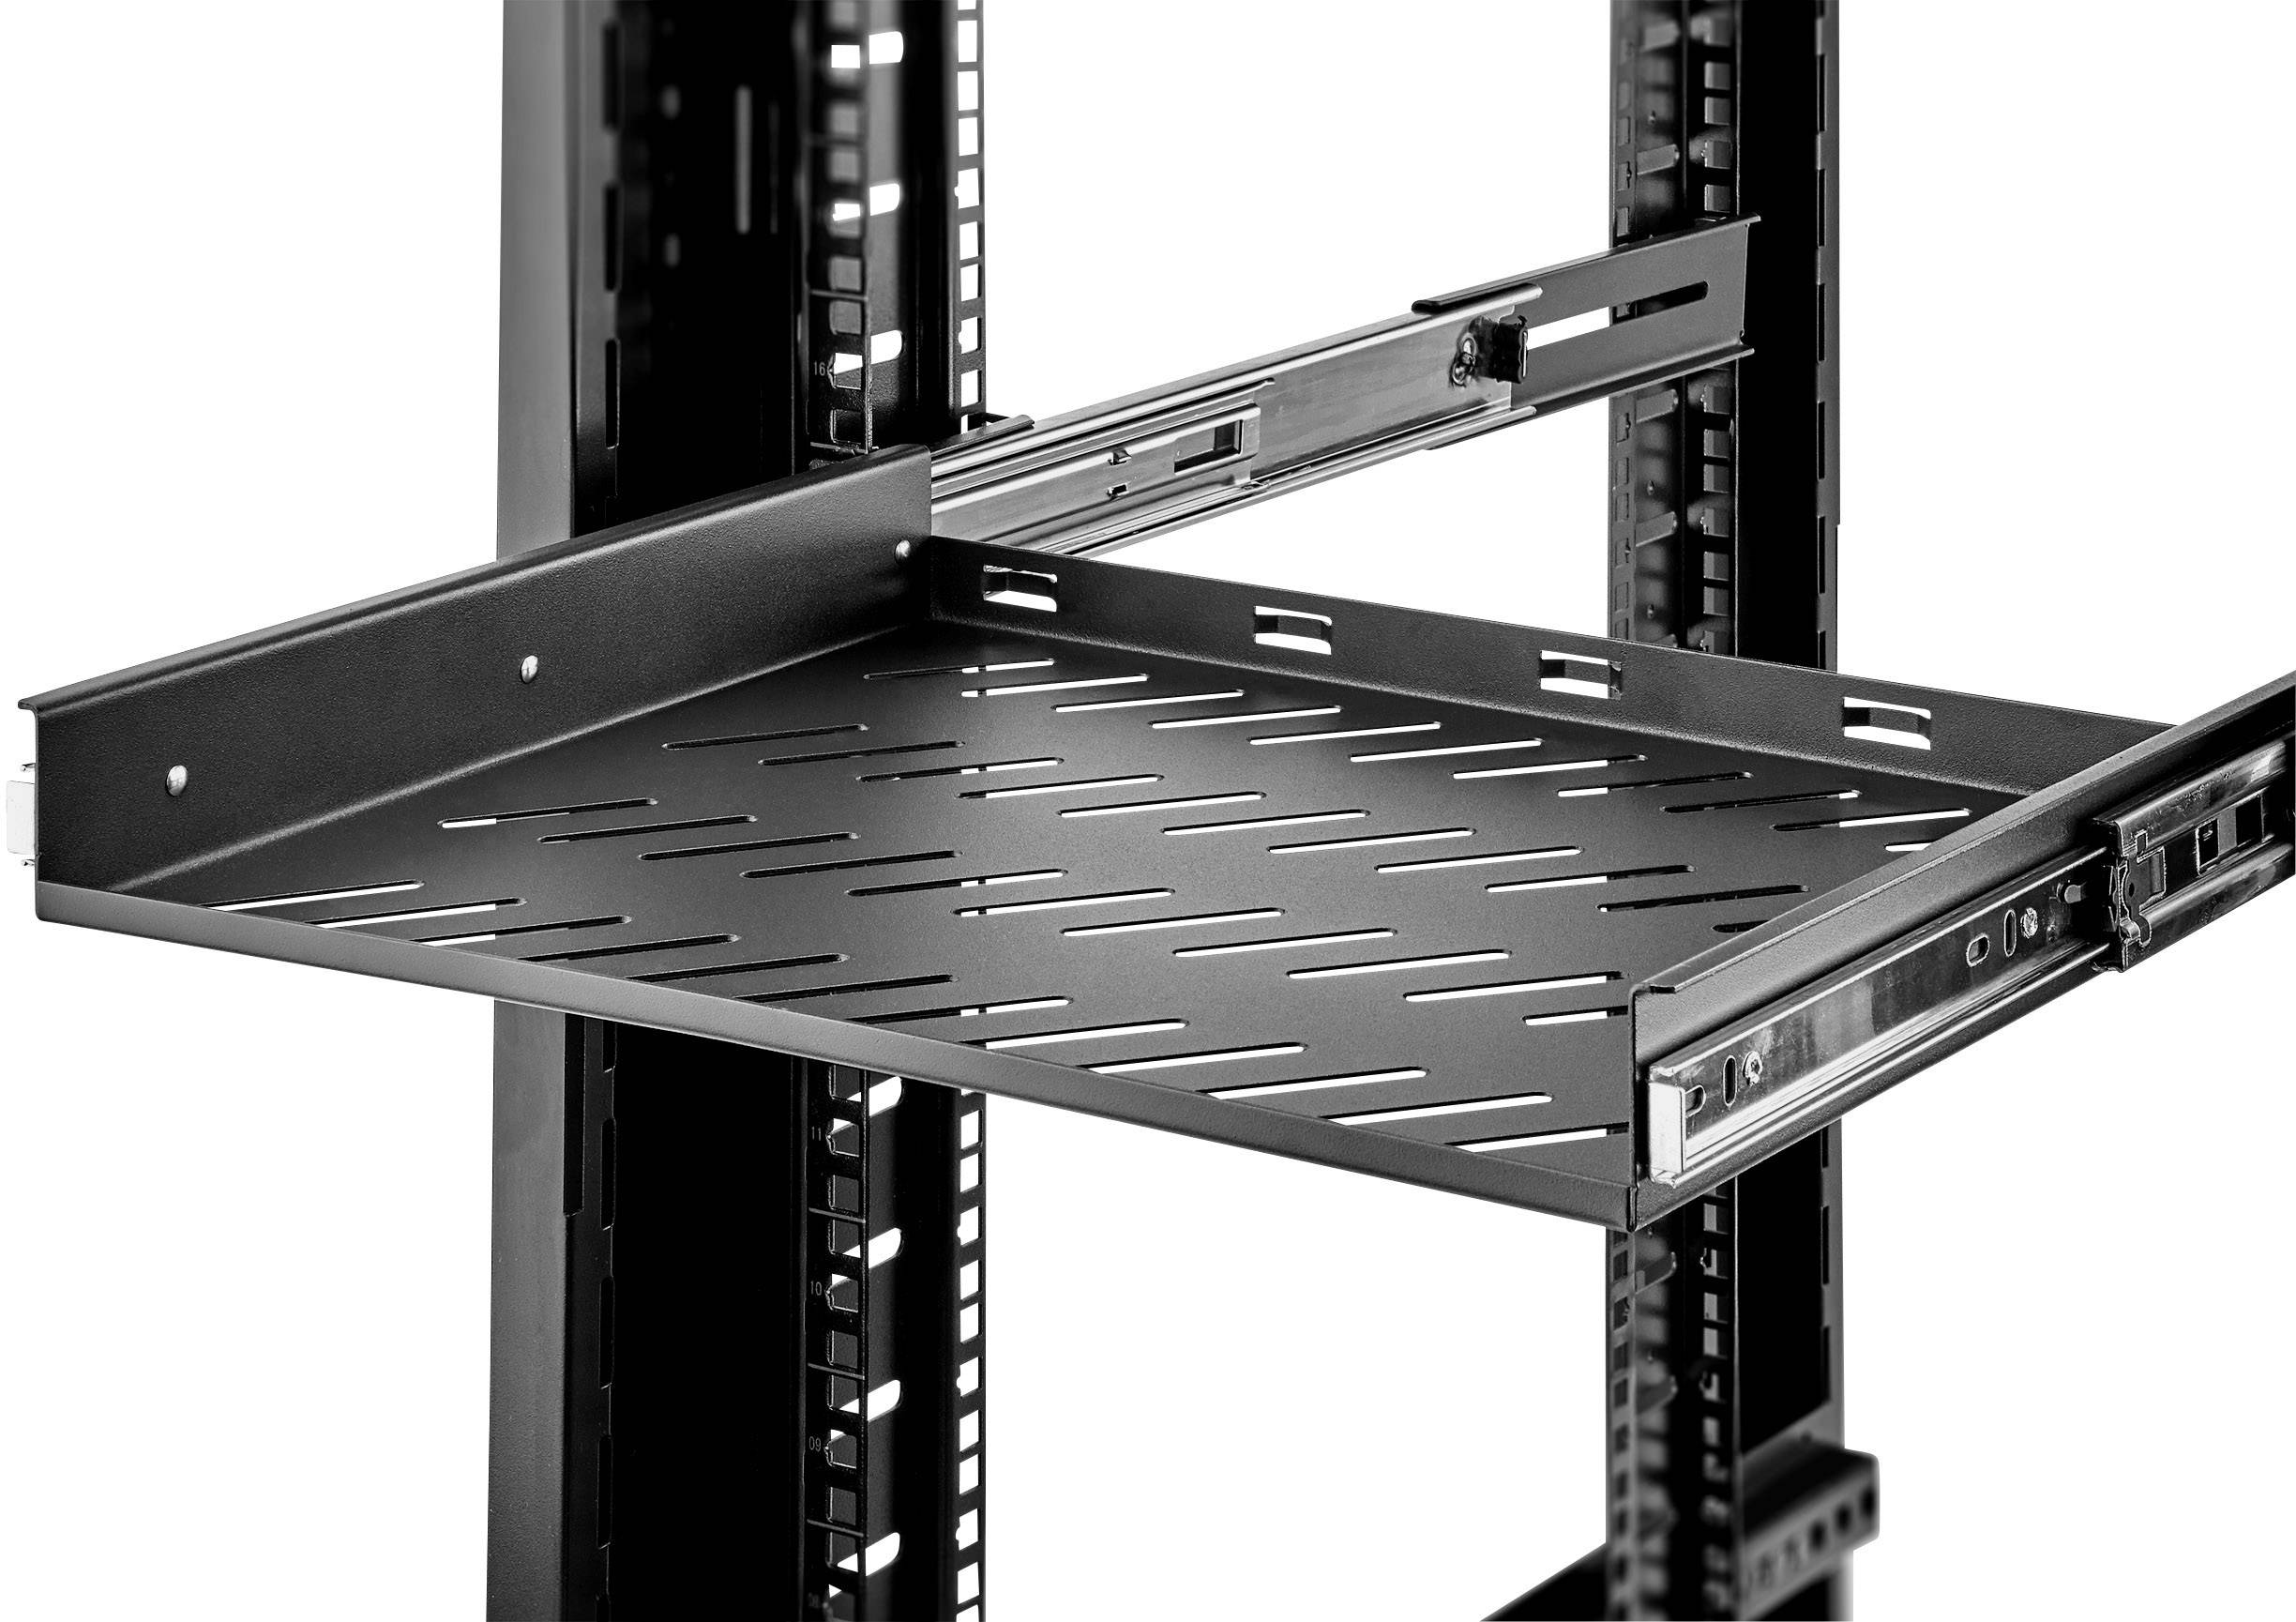 19 Inch Kast : Need a servercabinet or inch rack